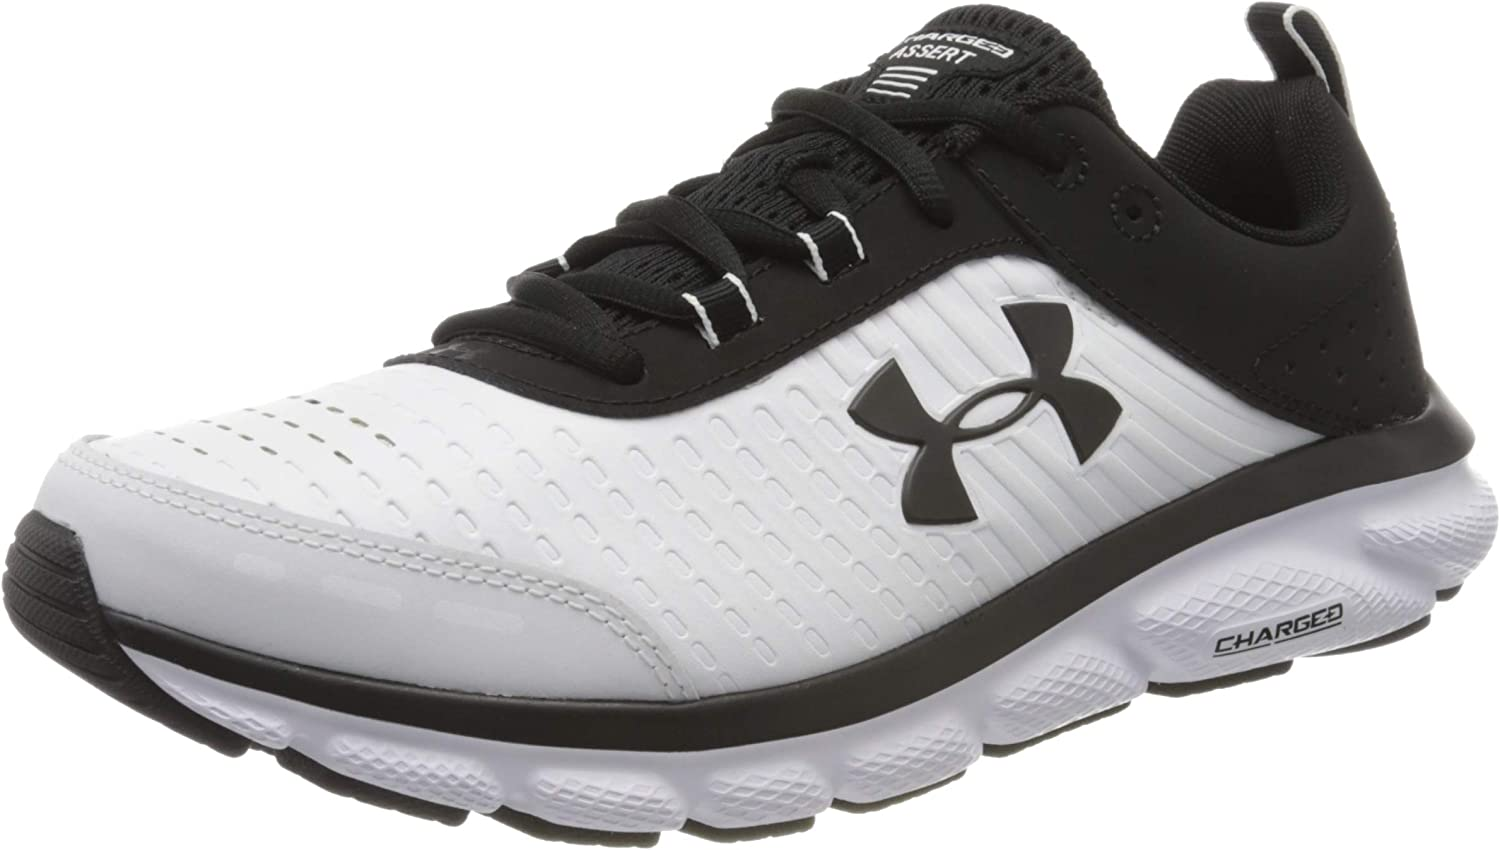 Under Armour Men's Charged Assert 8 Ltd Laufschuhe, Zapatillas de Running para Hombre